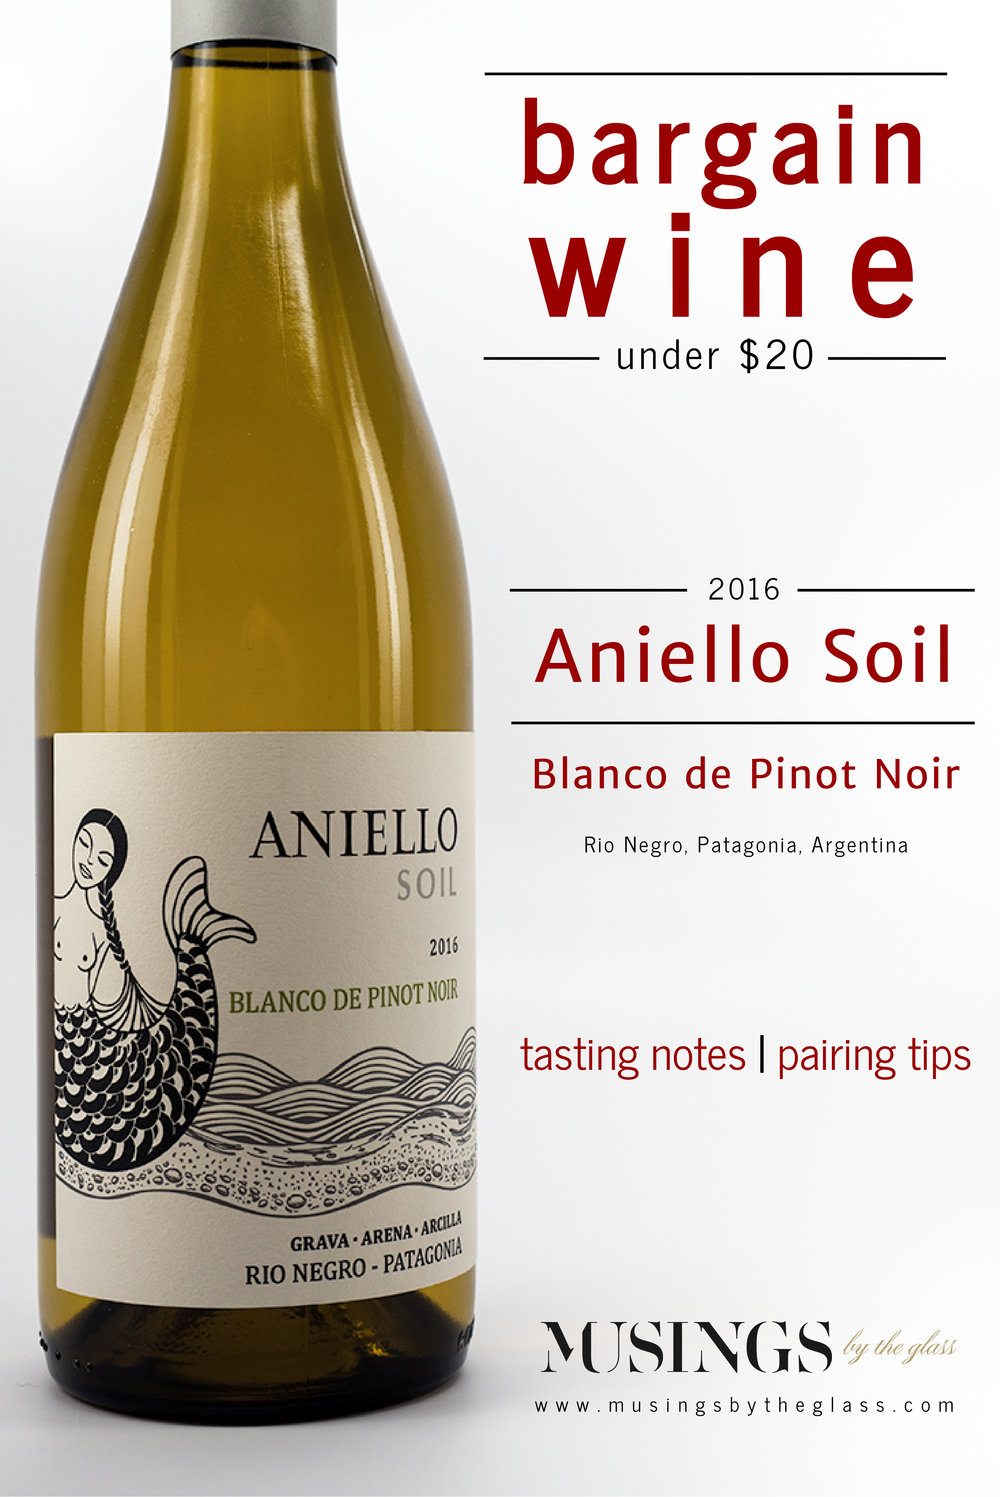 Musings by the Glass - Bargain Wines - 2016 Aniello Soil Blanco De Pinot Noir Patagonia Argentina